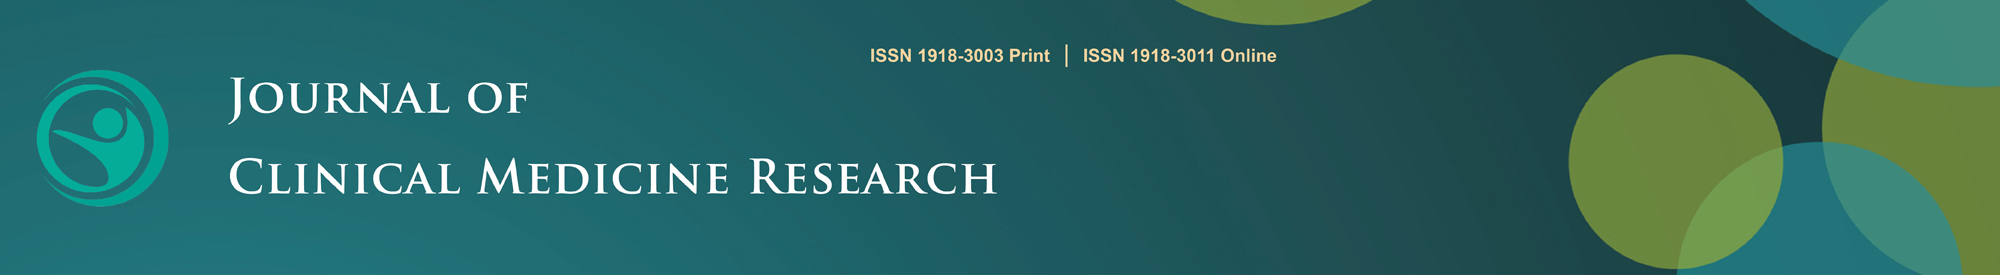 Journal of Clinical Medicine Research